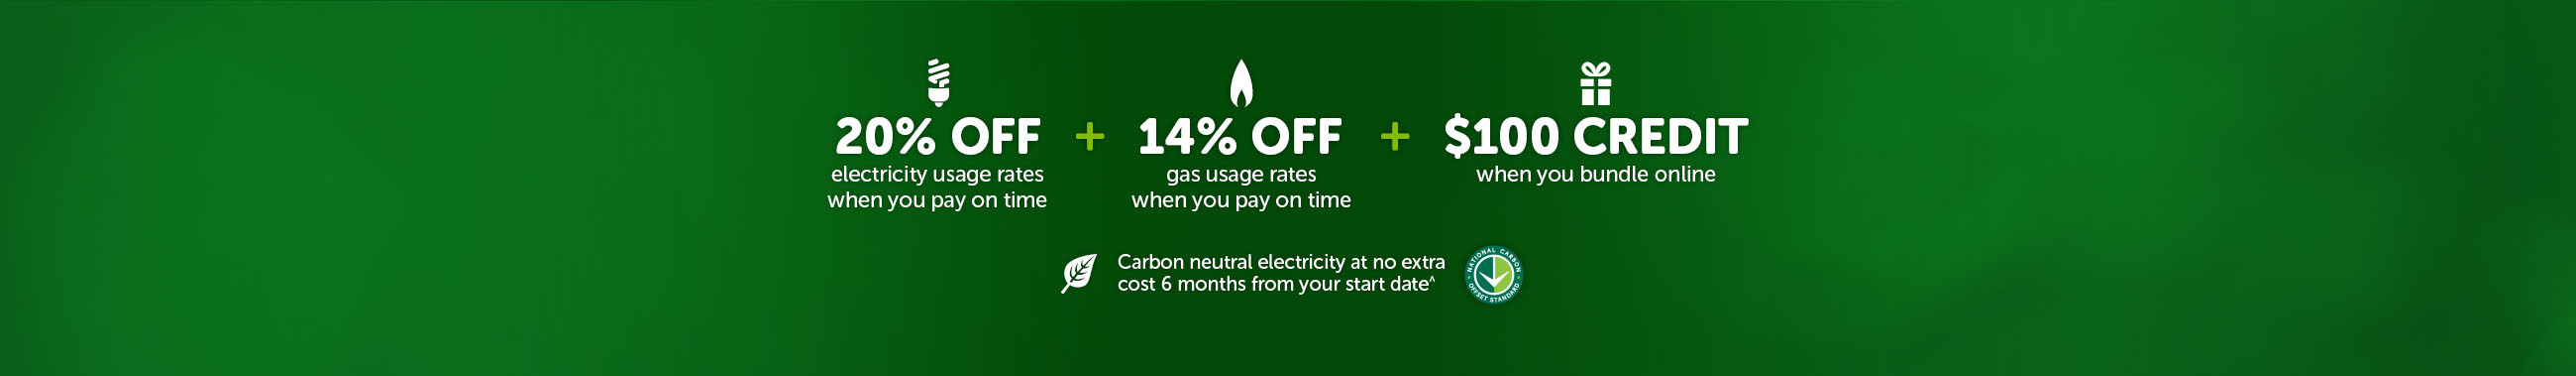 20% off electricity usage rates when you pay on time plus 14% off gas usage rates when you pay on time plus $100 credit when you bundle online and Carbon neutral electricity at no extra cost 6 months from your start date^